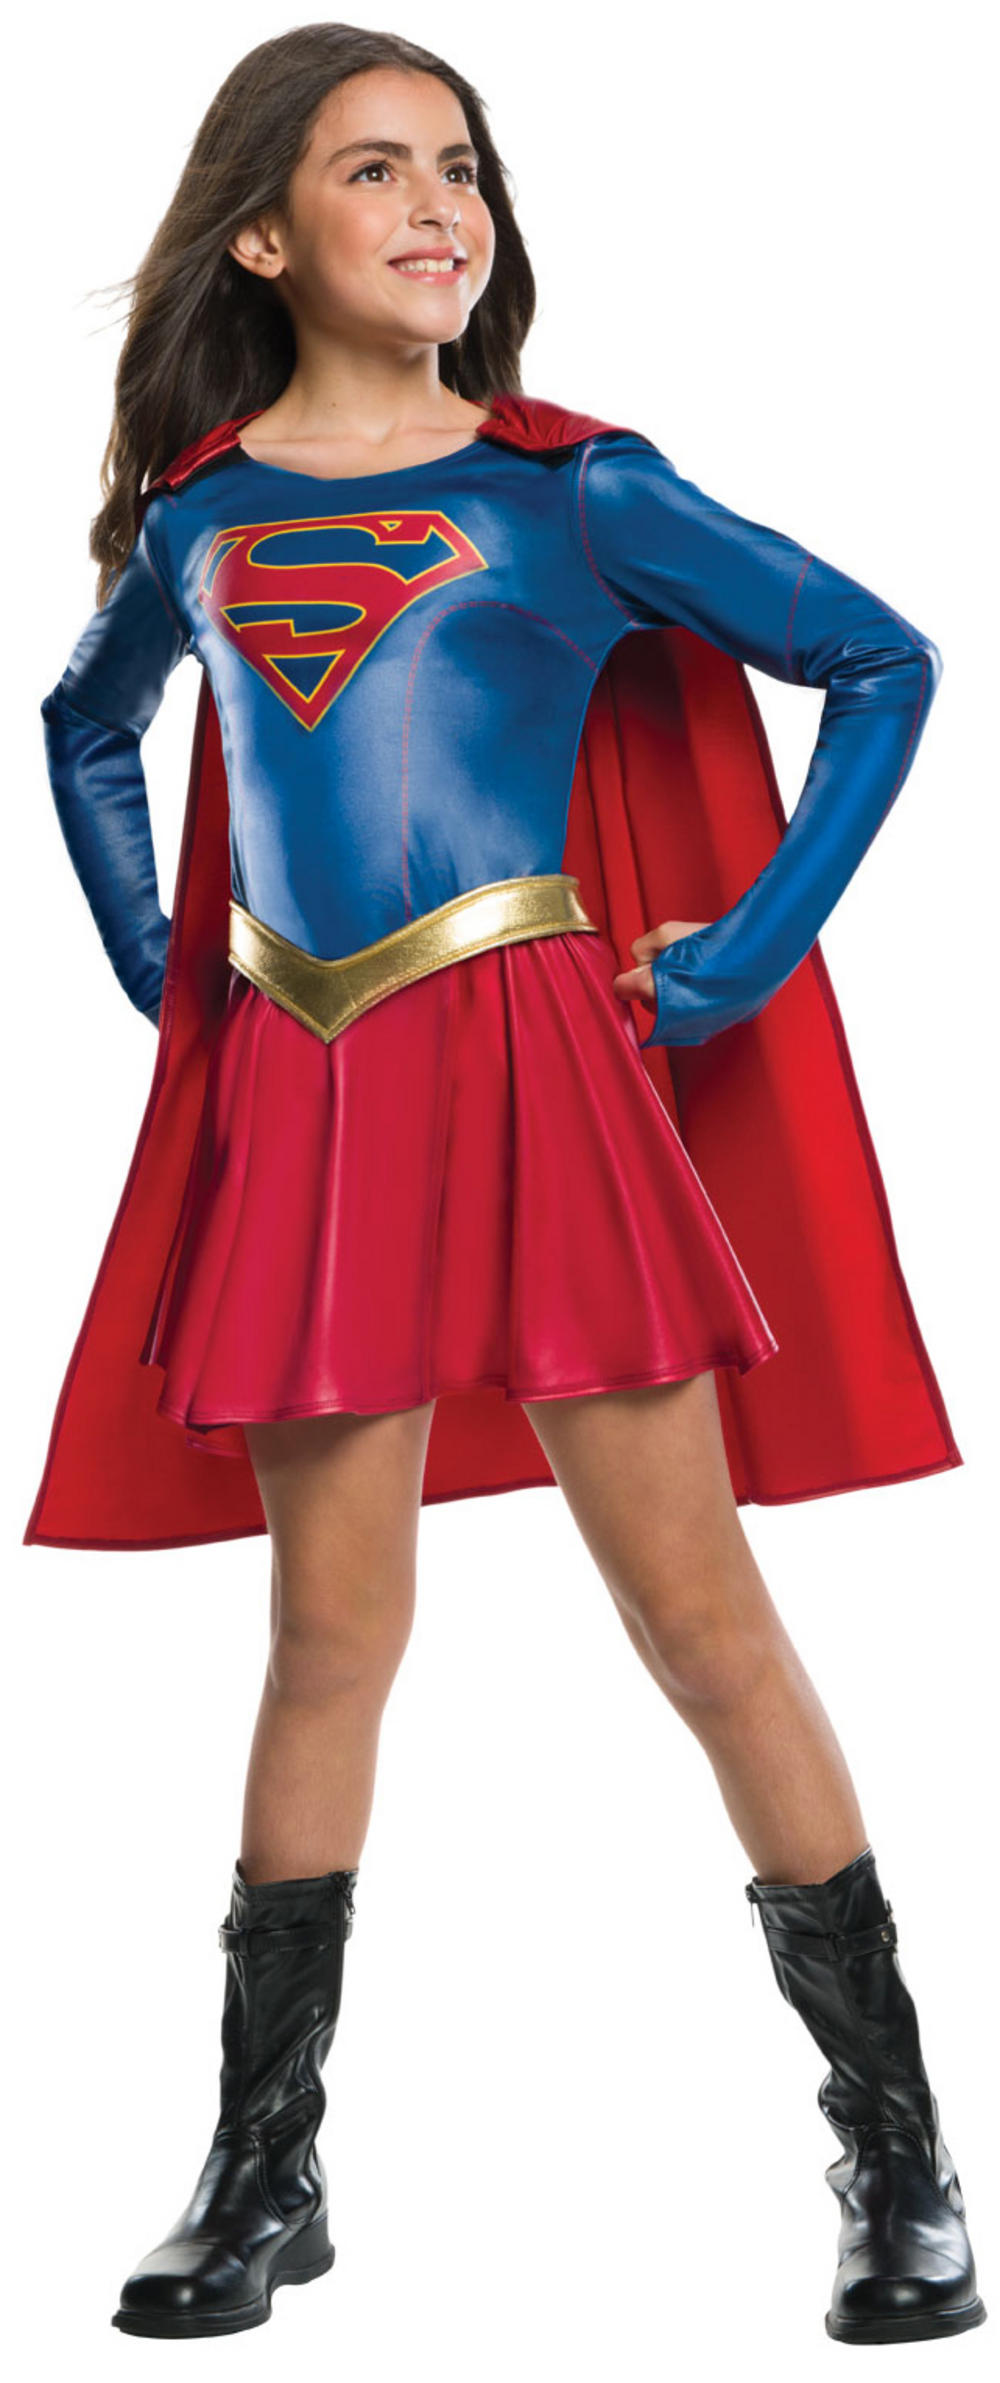 Supergirl TV Series Girls Costume